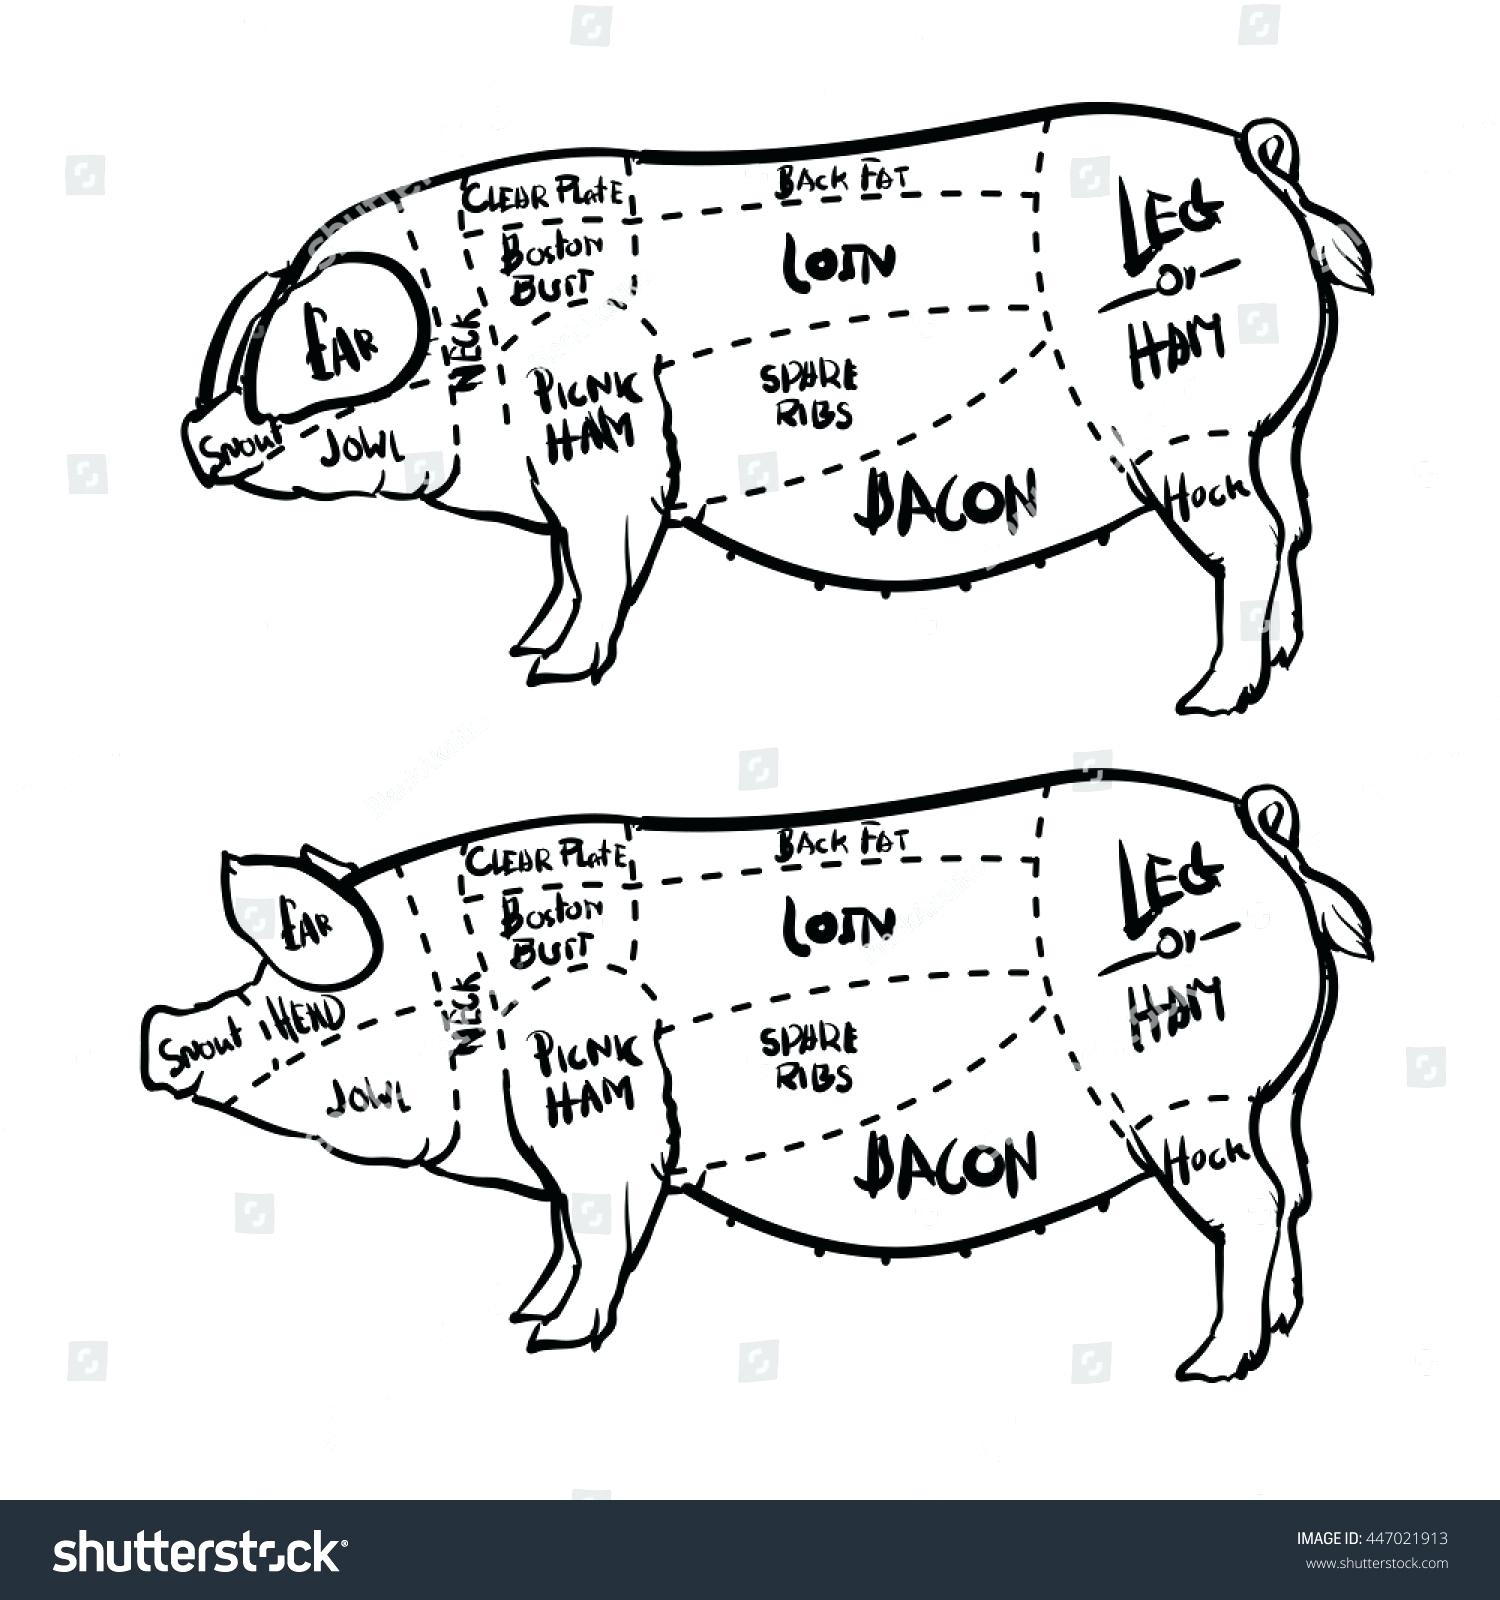 Pig butcher drawing at getdrawings free for personal use pig rh getdrawings blank pork diagram pork diagram cuts